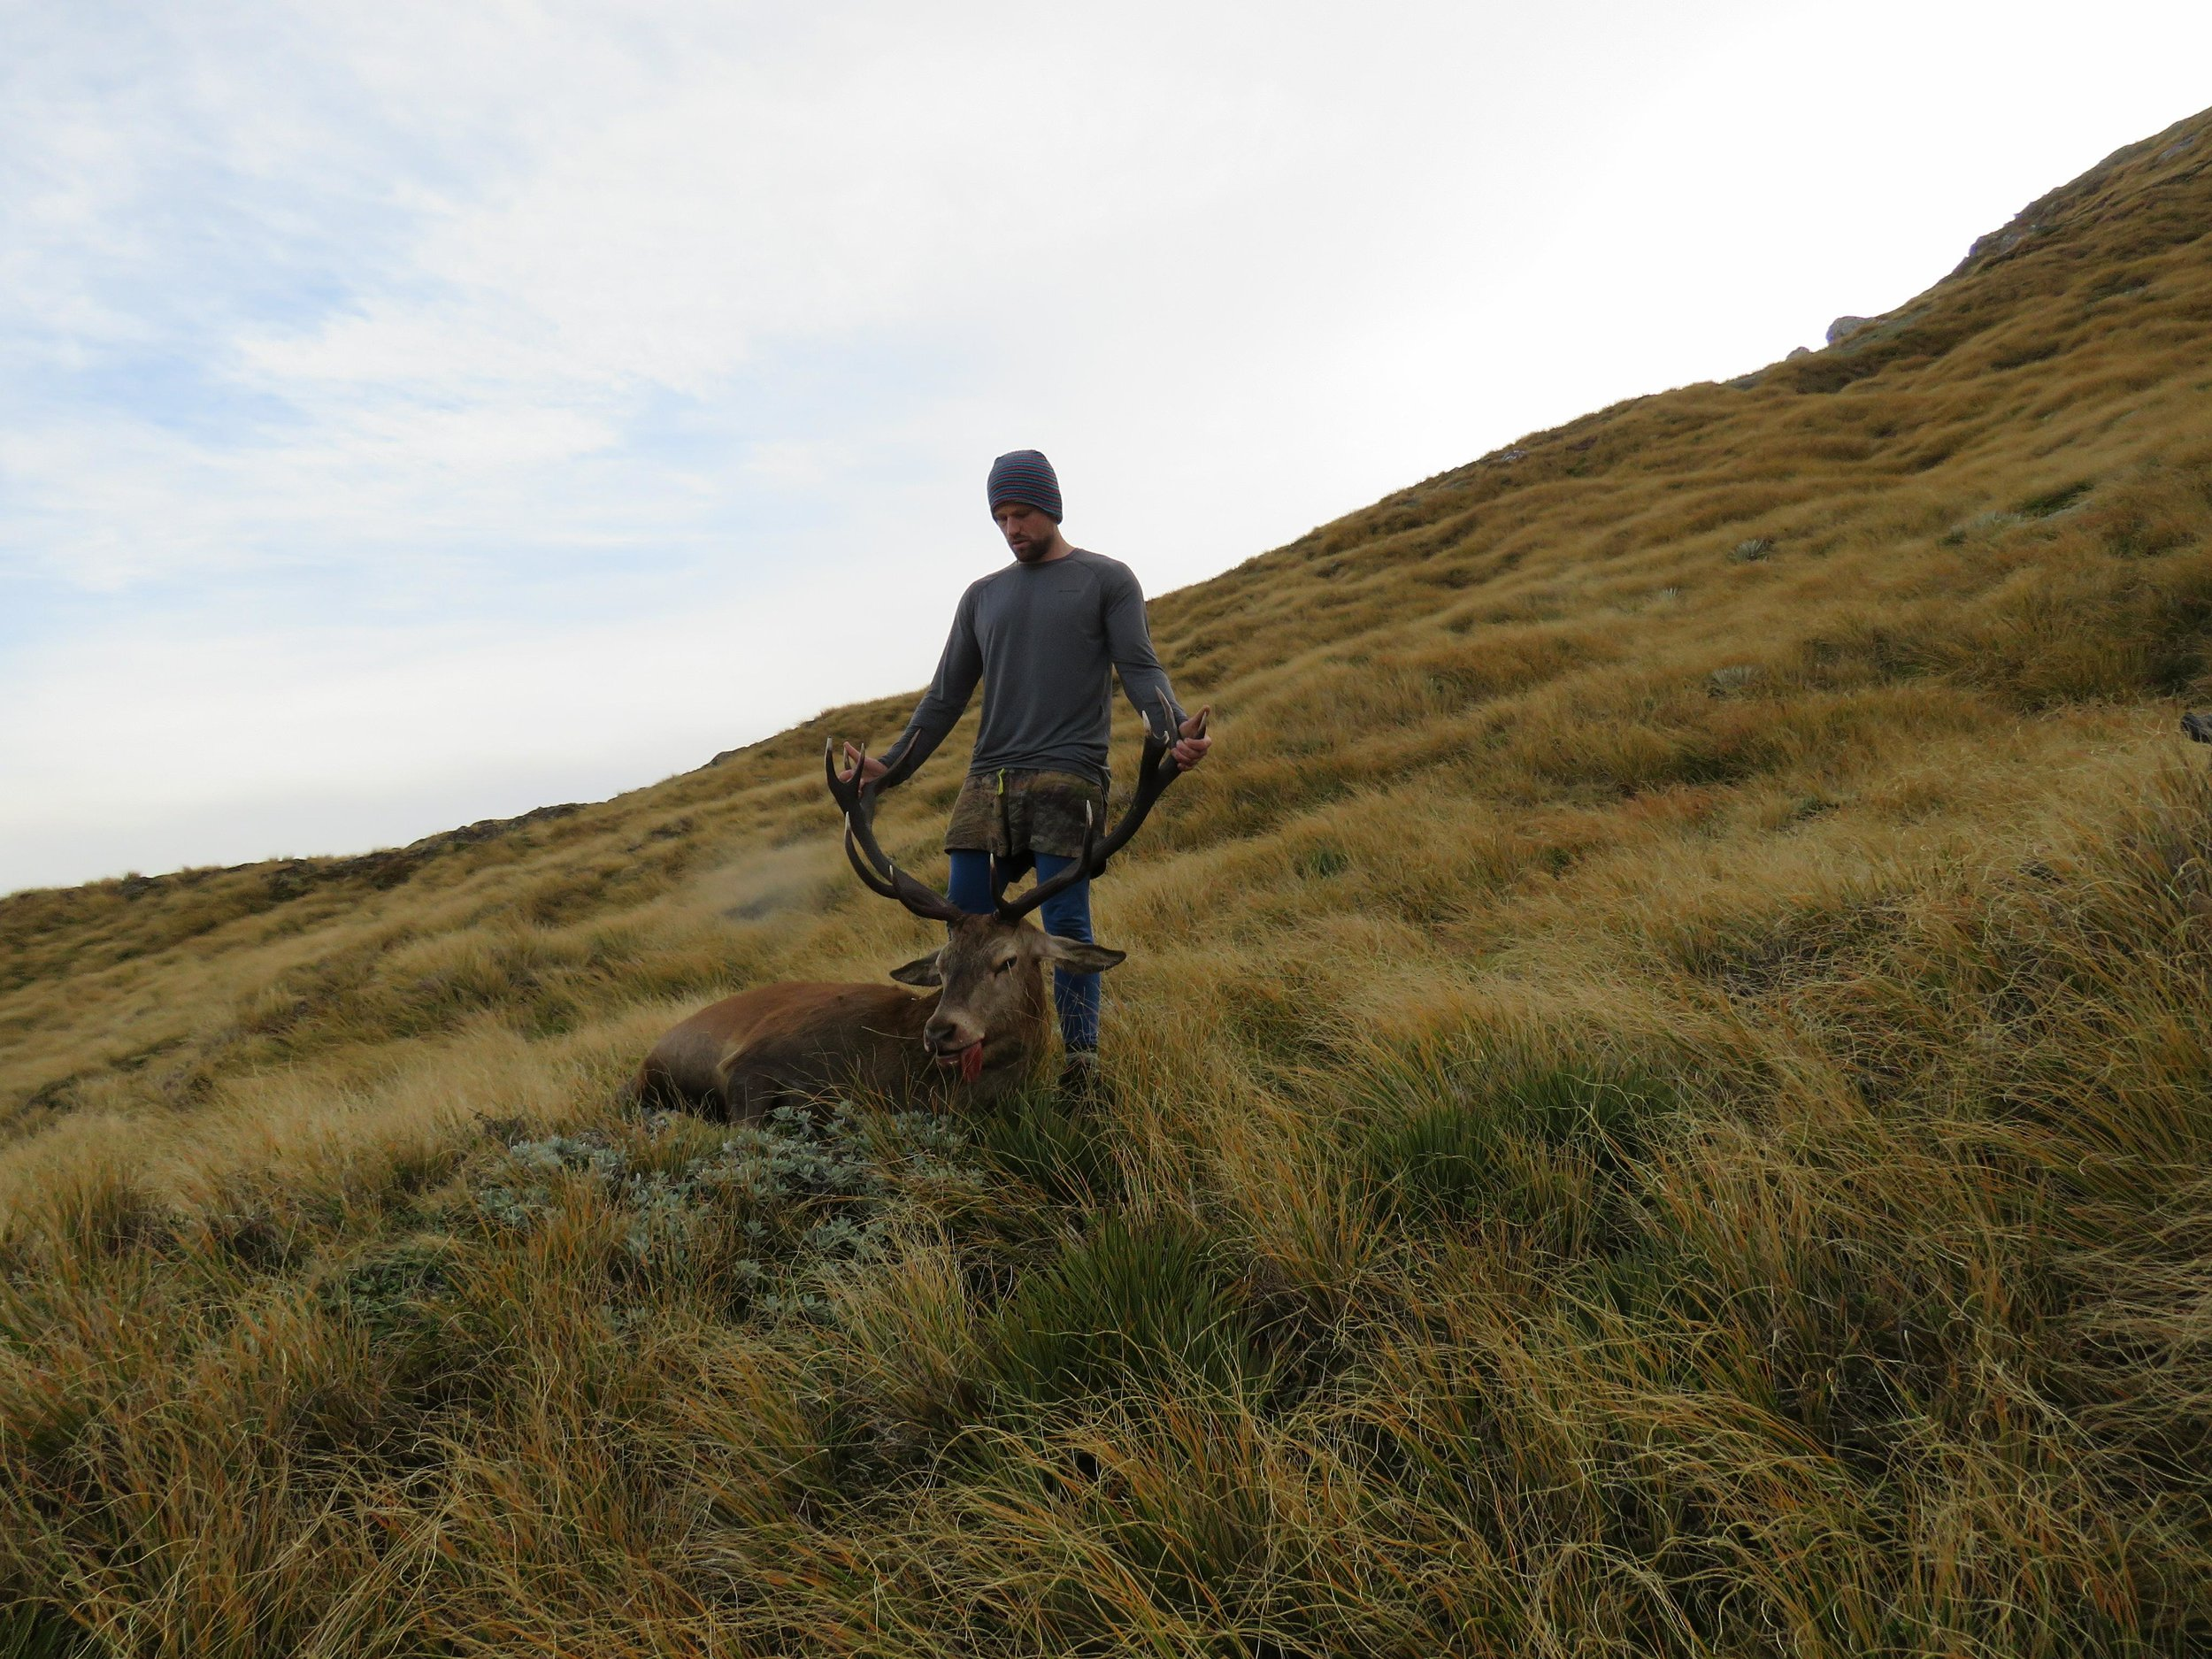 stag in the new zealand tussocks